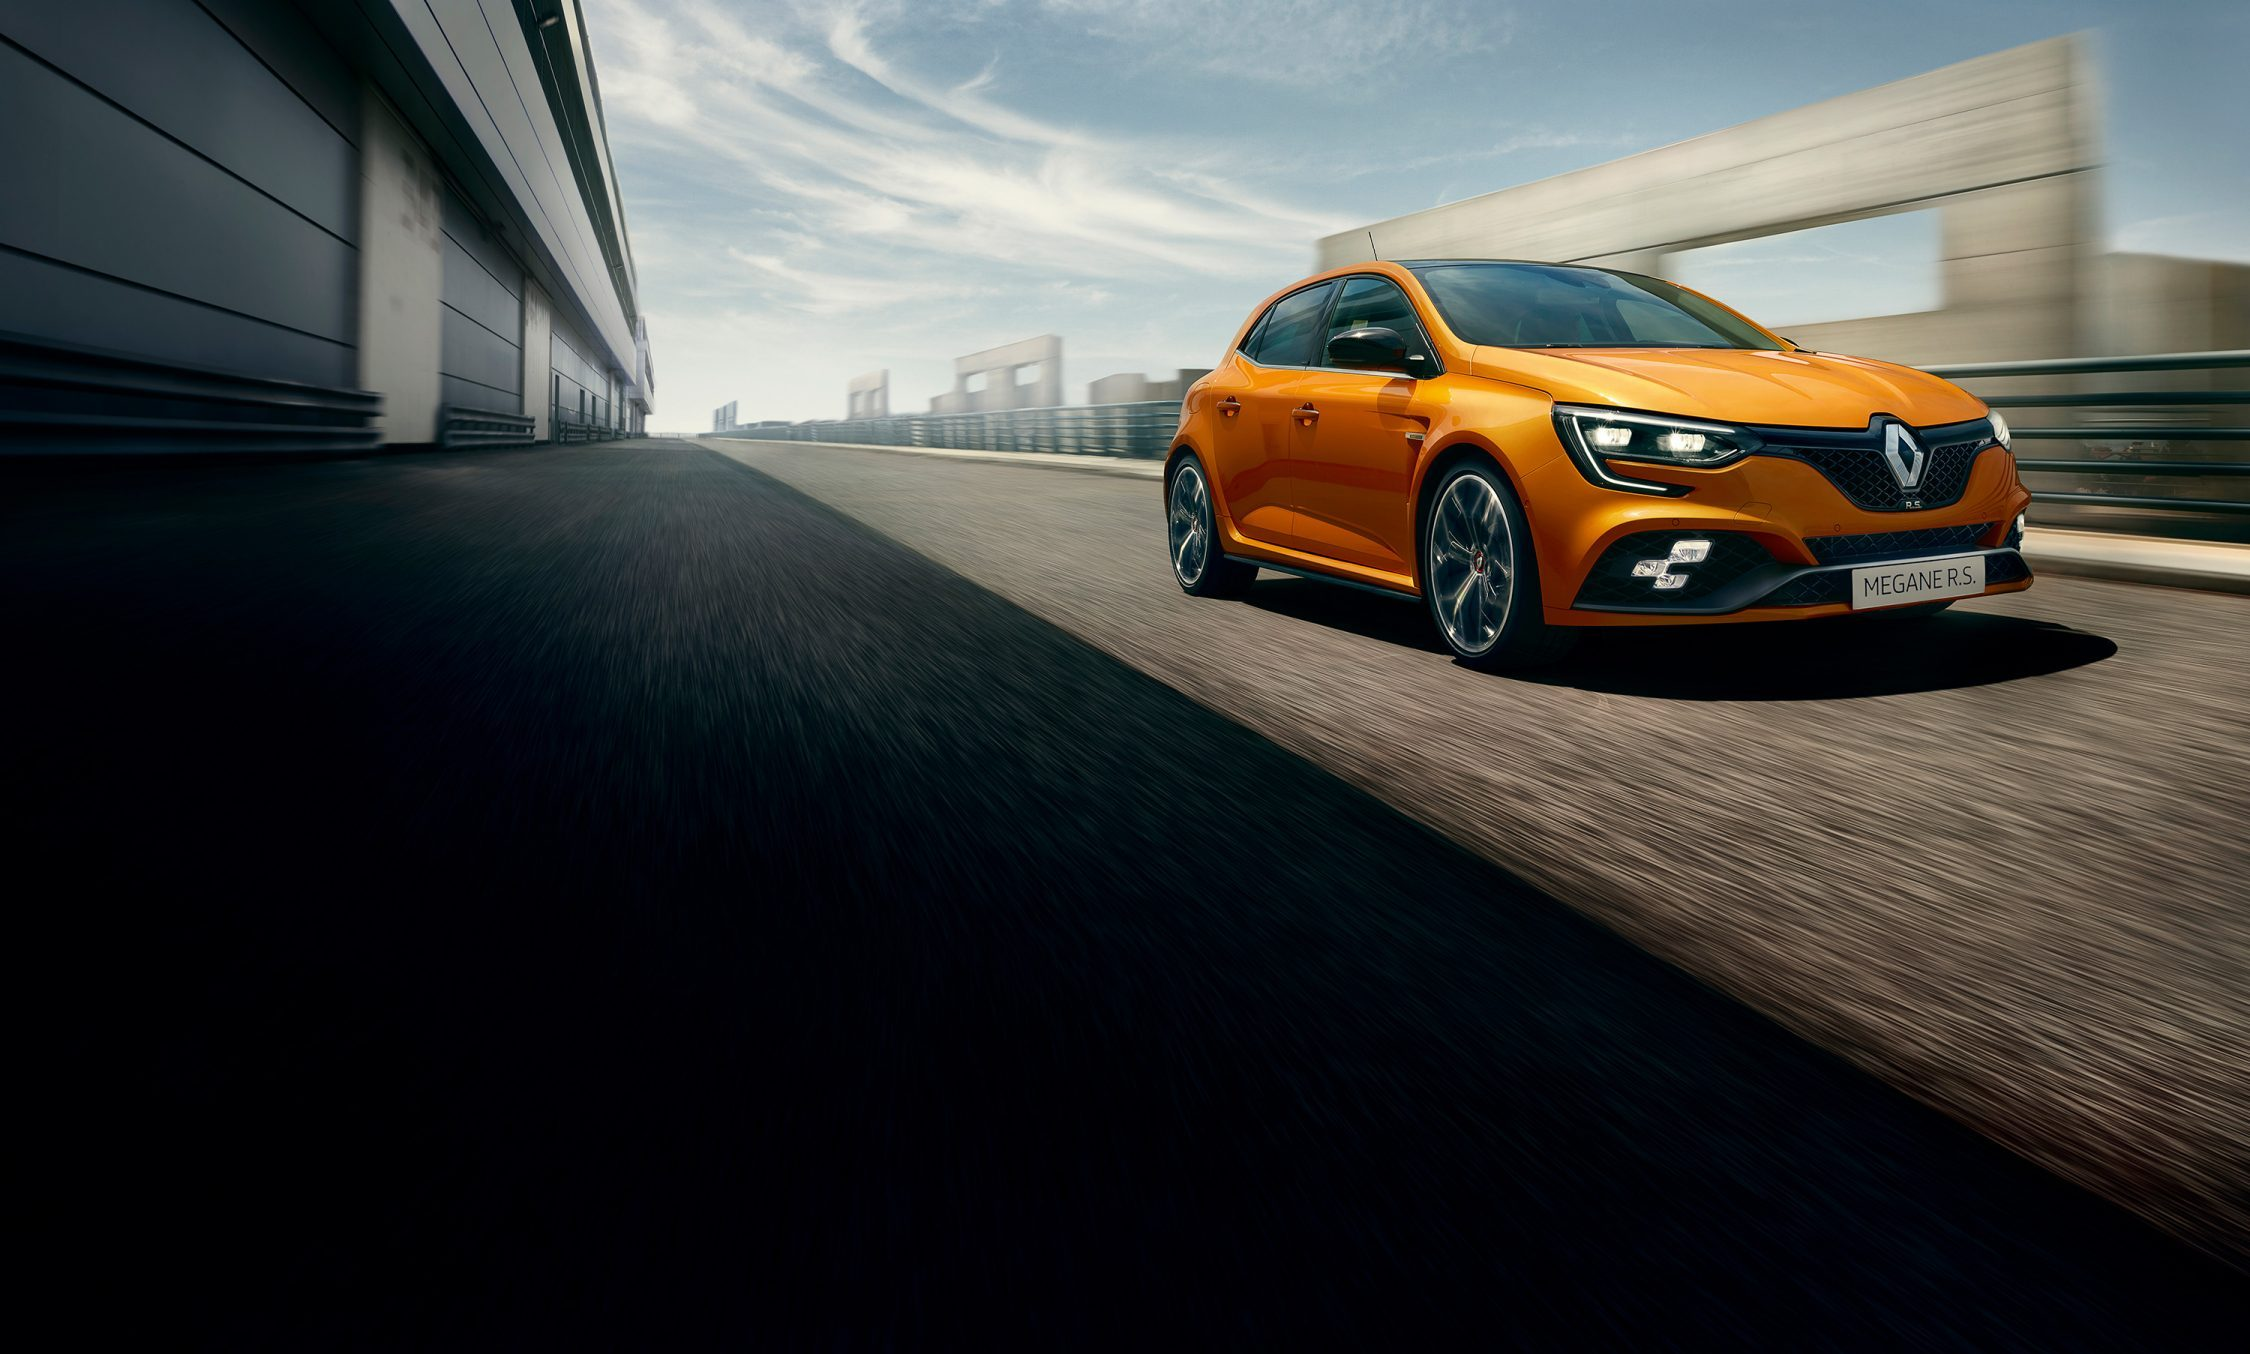 renault-megane-rs-beauty-shot-desktop.jpg.ximg.l_full_h.smart